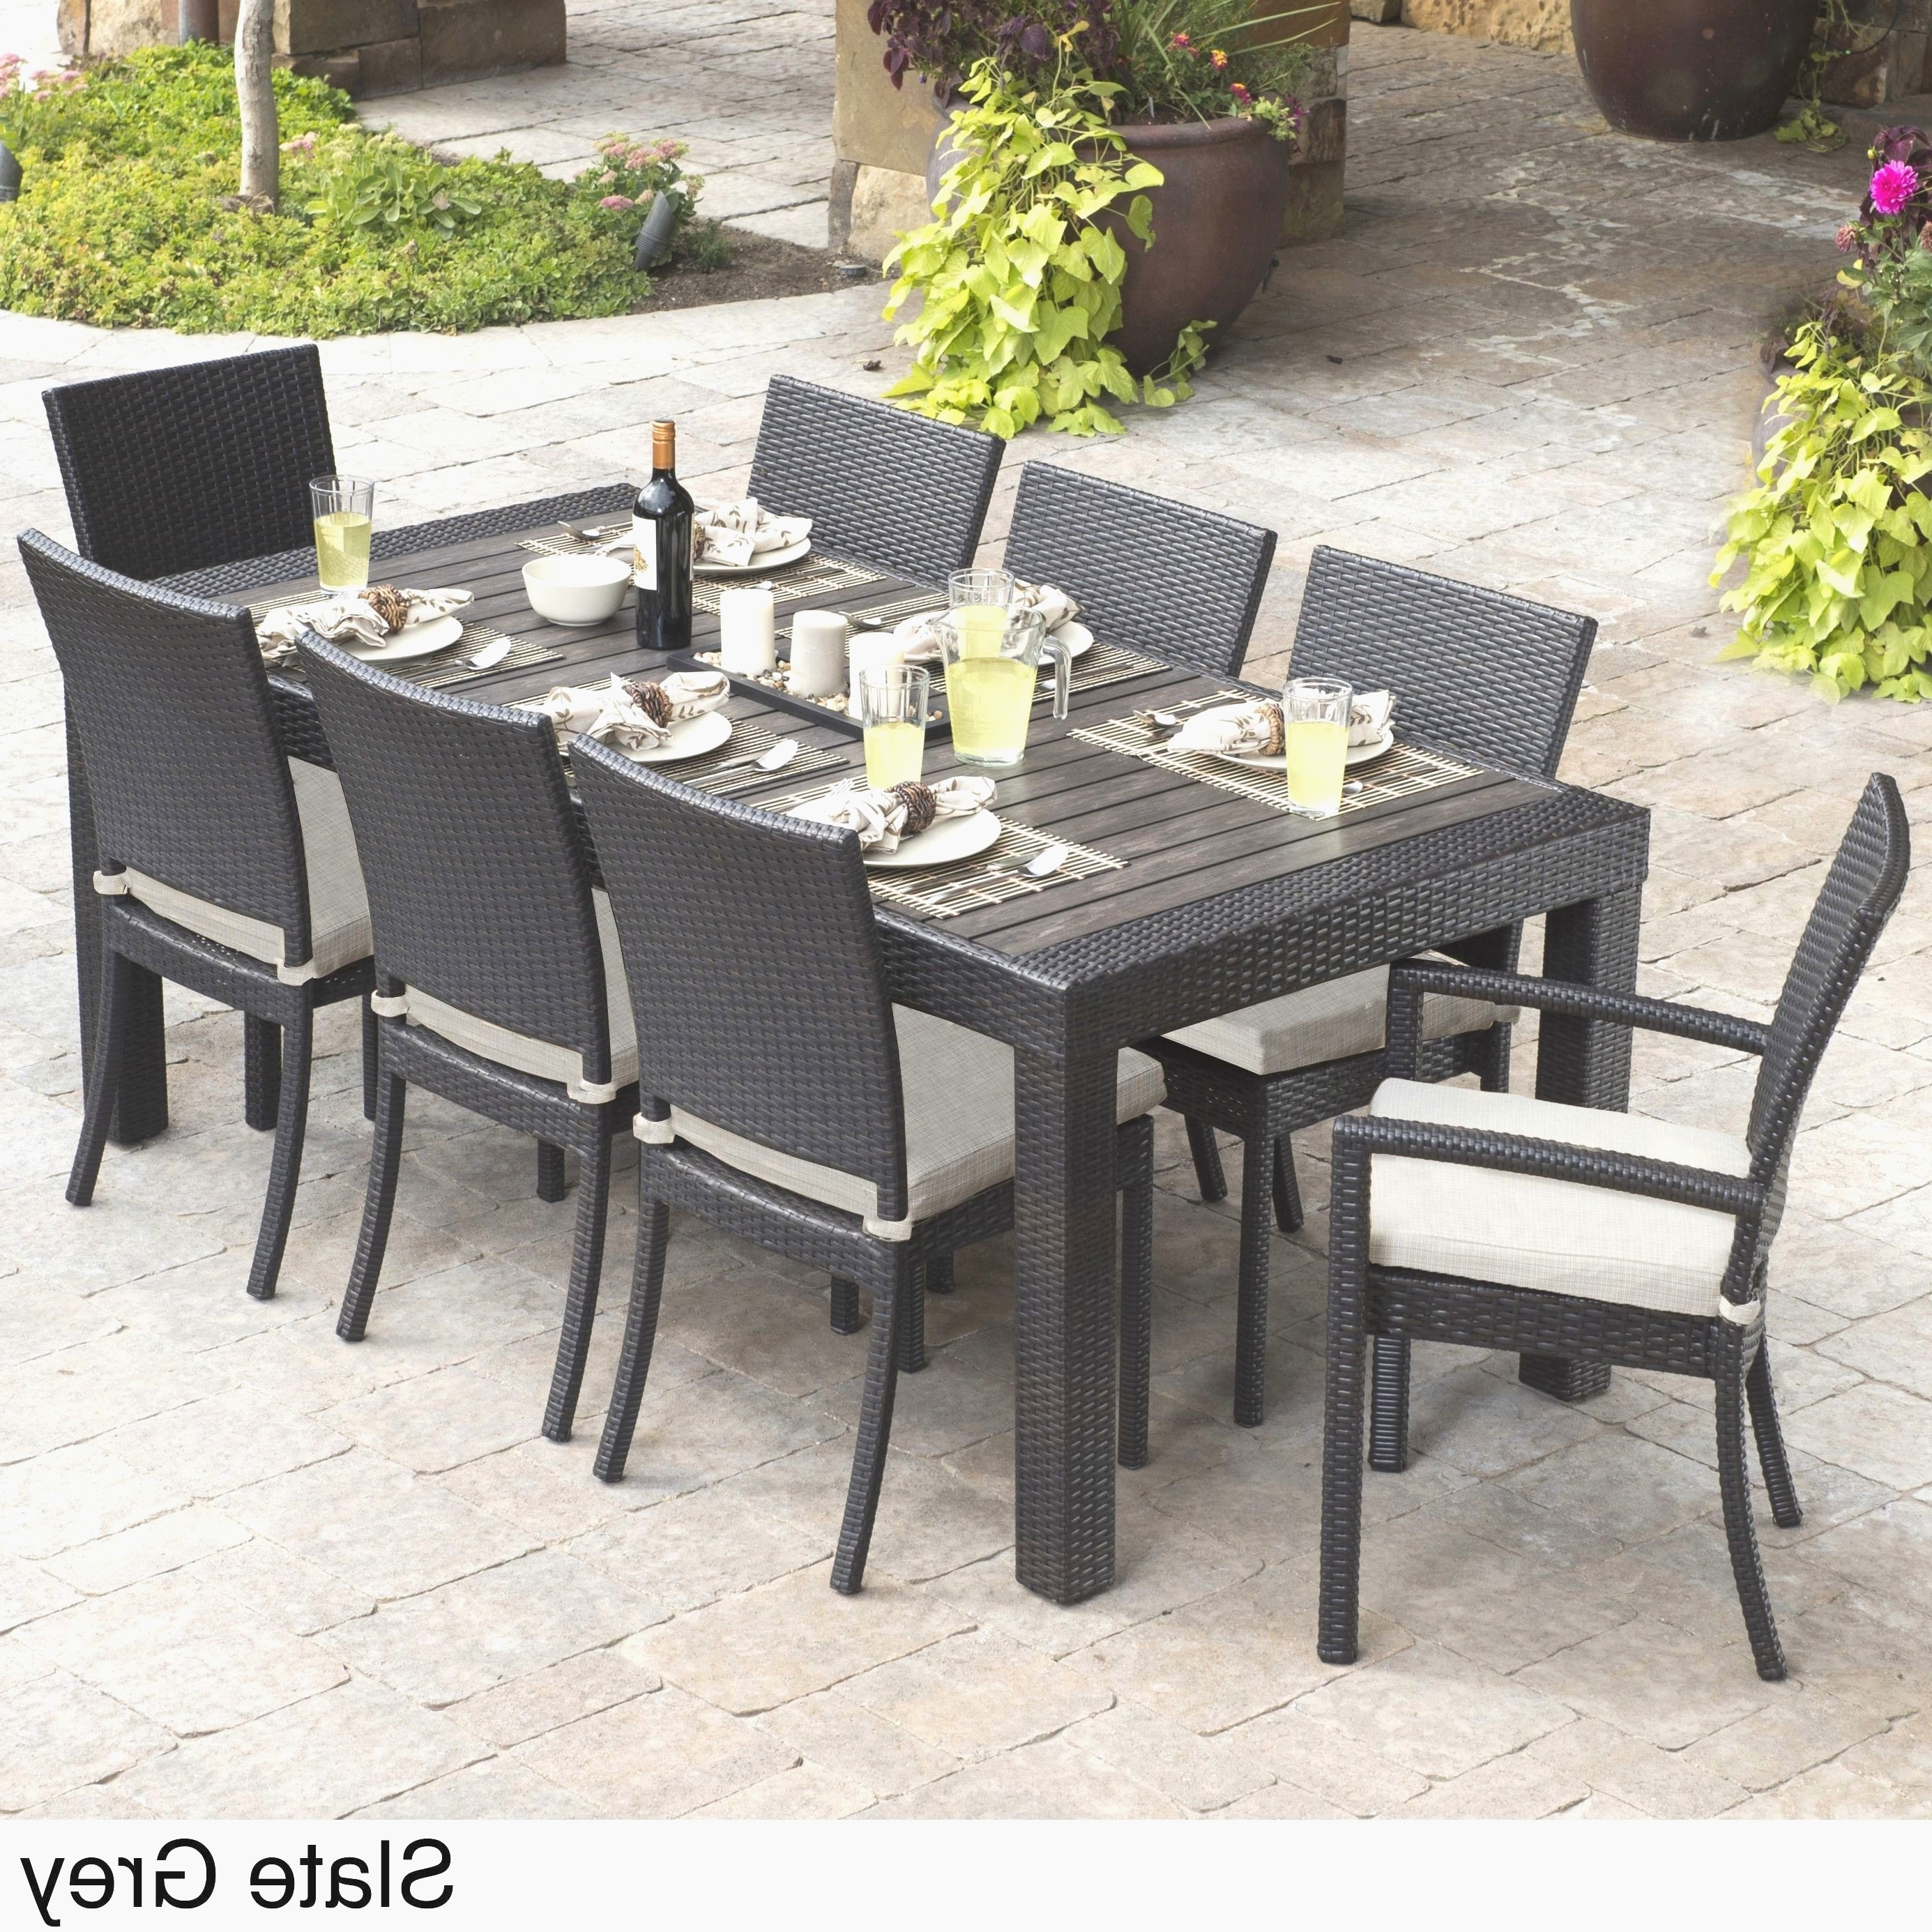 Expensive Patio Umbrellas Throughout Fashionable Patio Furniture Houston Fresh Expensive Garden Furniture Expensive (View 8 of 20)